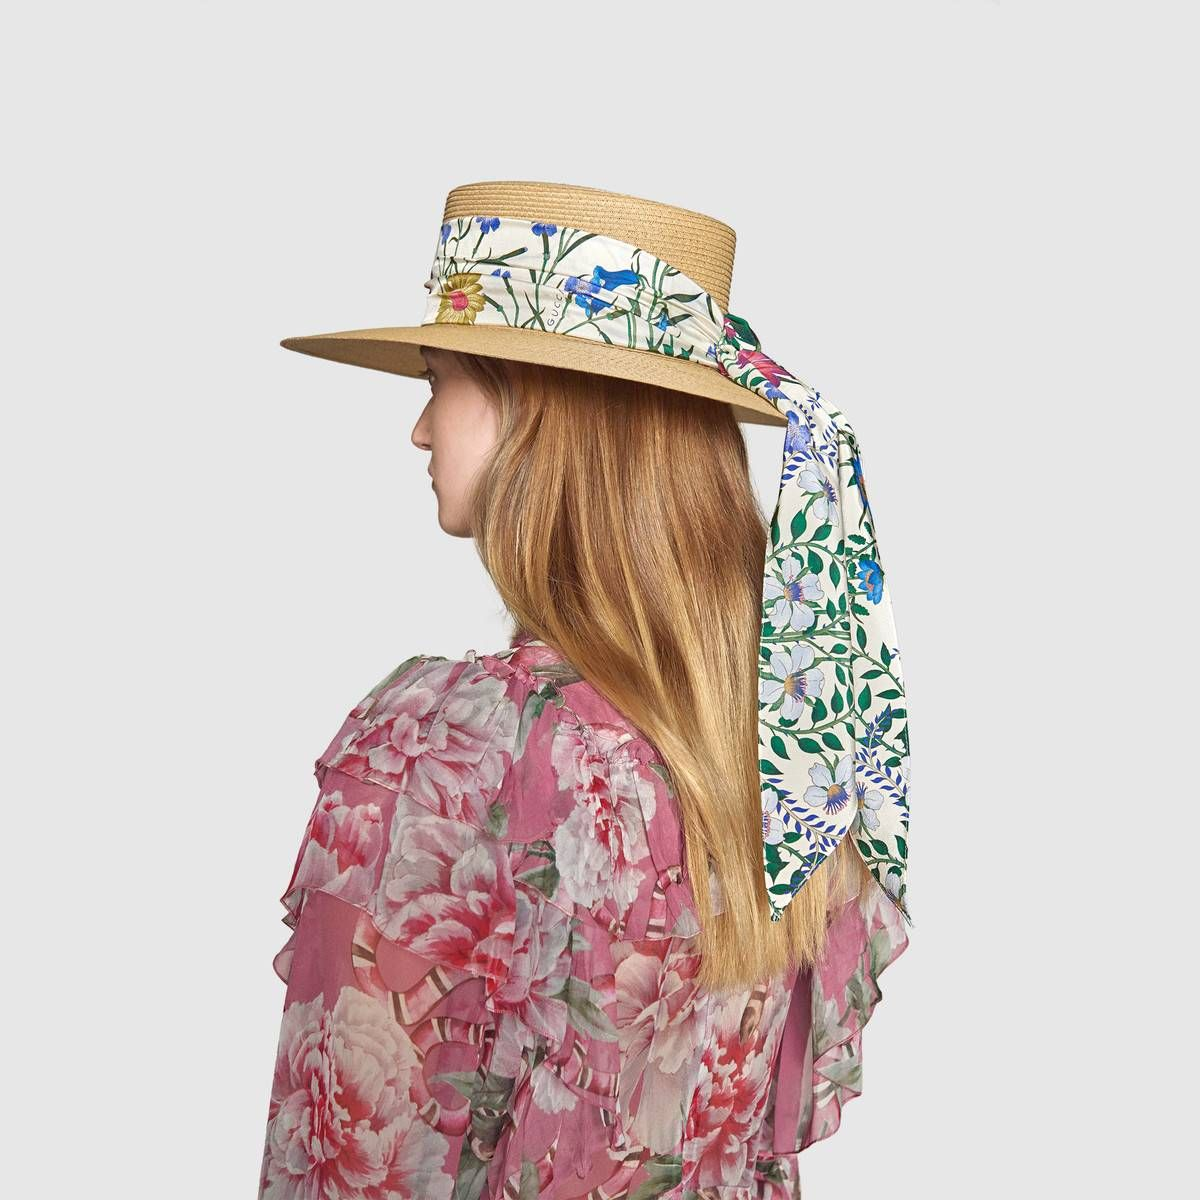 Shop The Papier Hat With New Flora Ribbon By Gucci The Original Flora Print Was Conceived By Italian Artist V Hat Designs Leather Gloves Women Designing Women